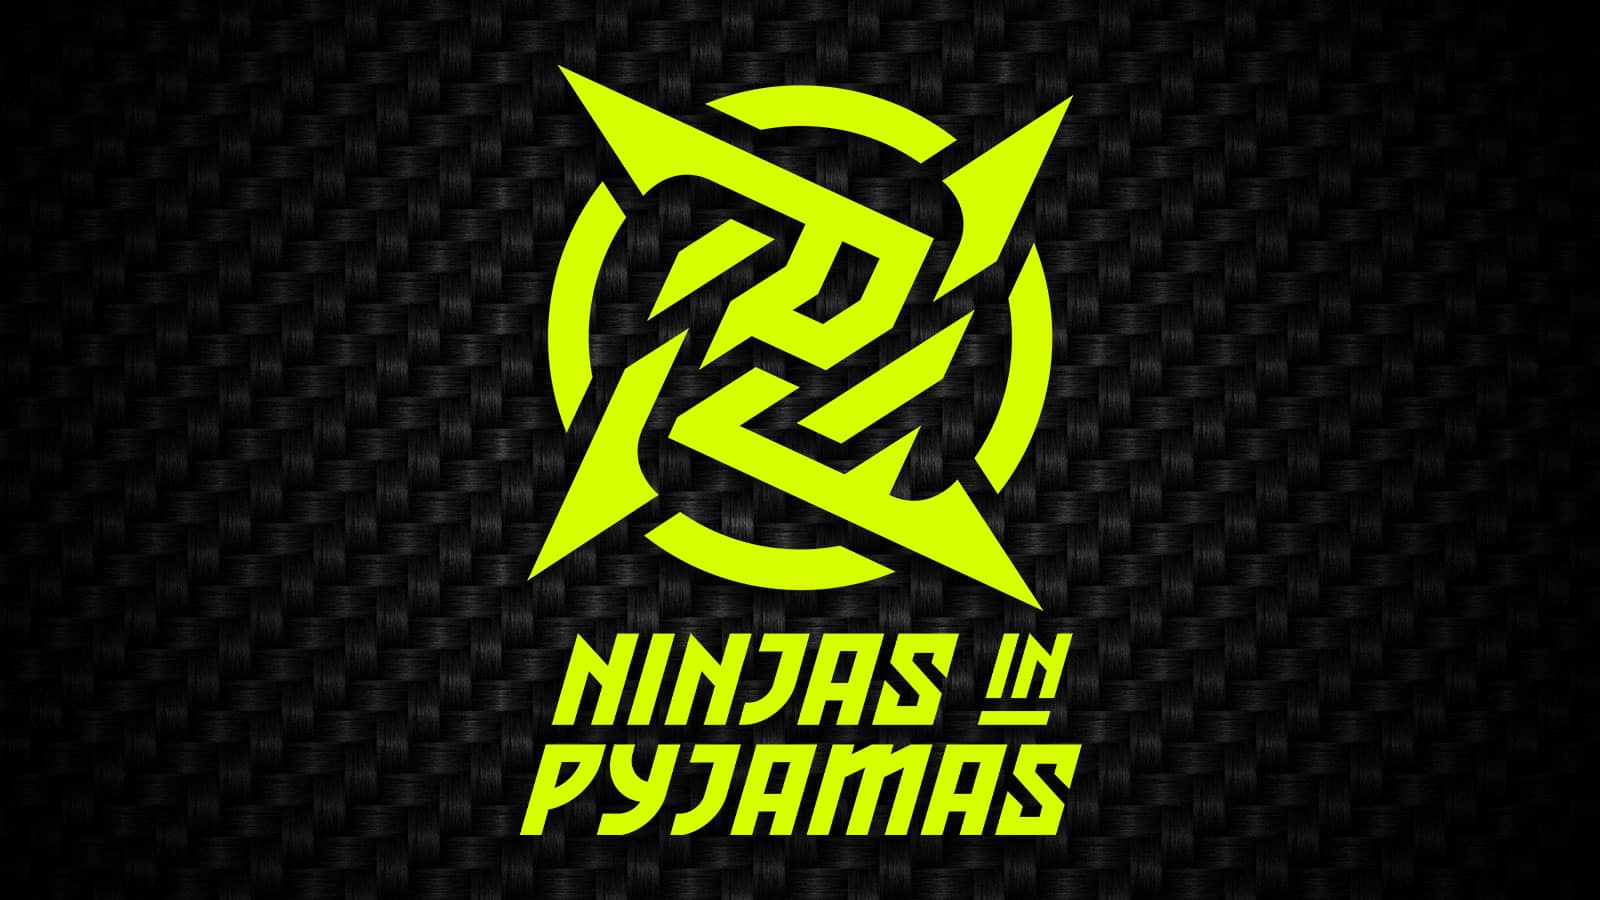 NIP sign ec1s as akukhoS takes break from competitive play due to health issues